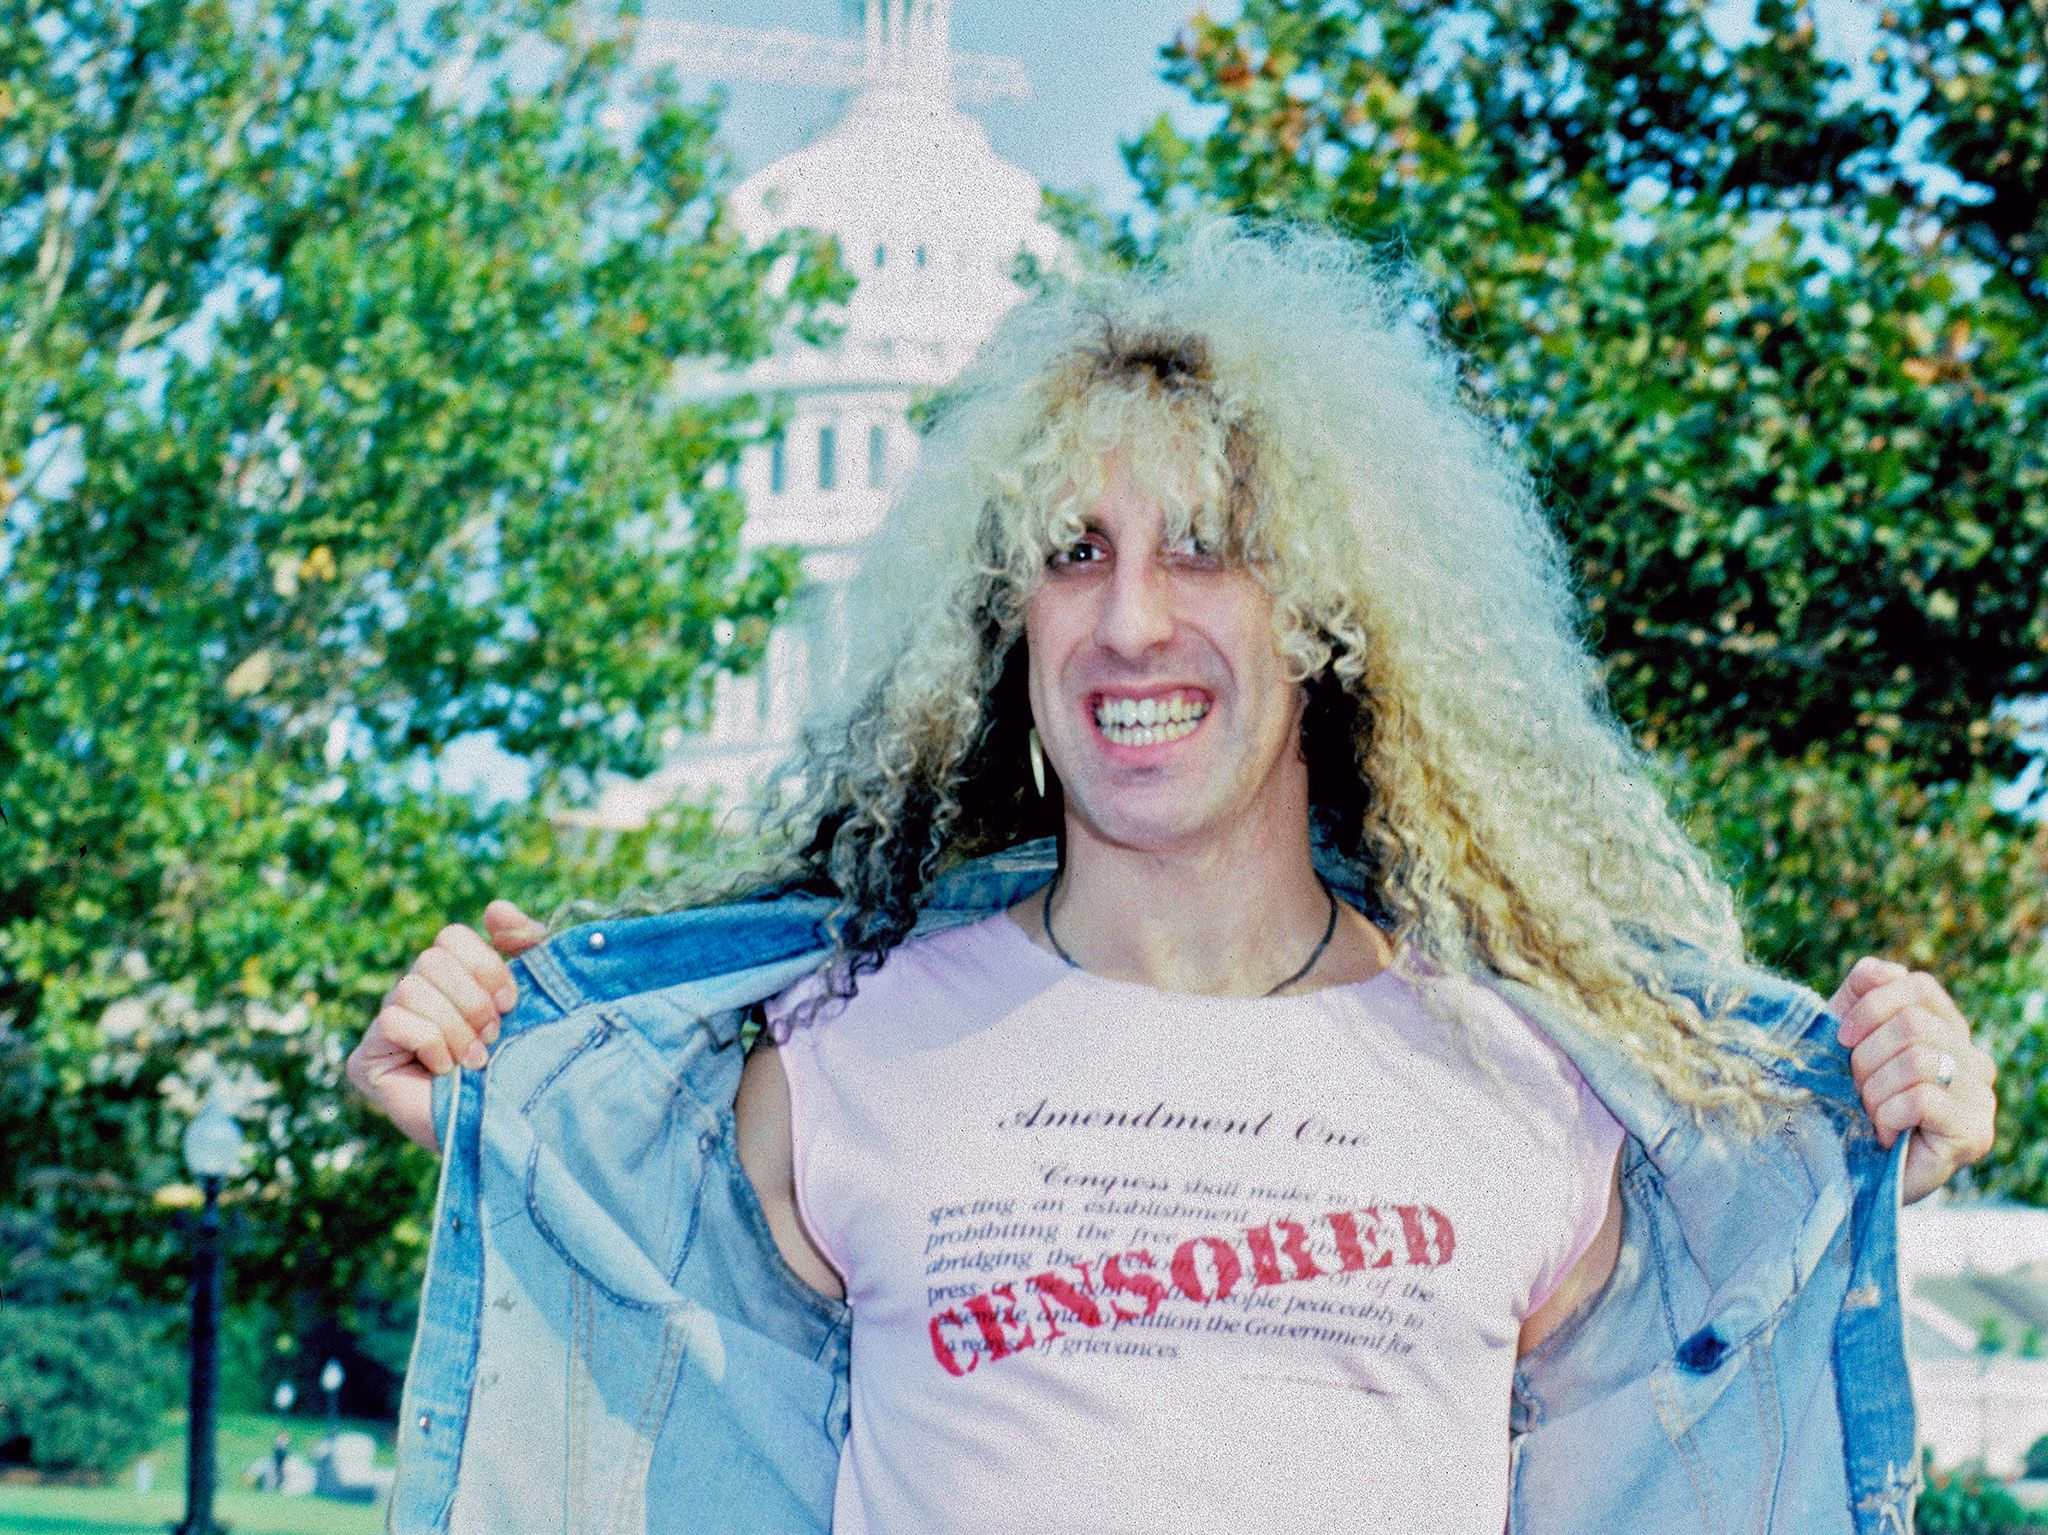 1985 Dee Snider CENSORED t-shirt. This image is from Decades Remixed: The '80s Greatest. [Photo of the day - October 2018]